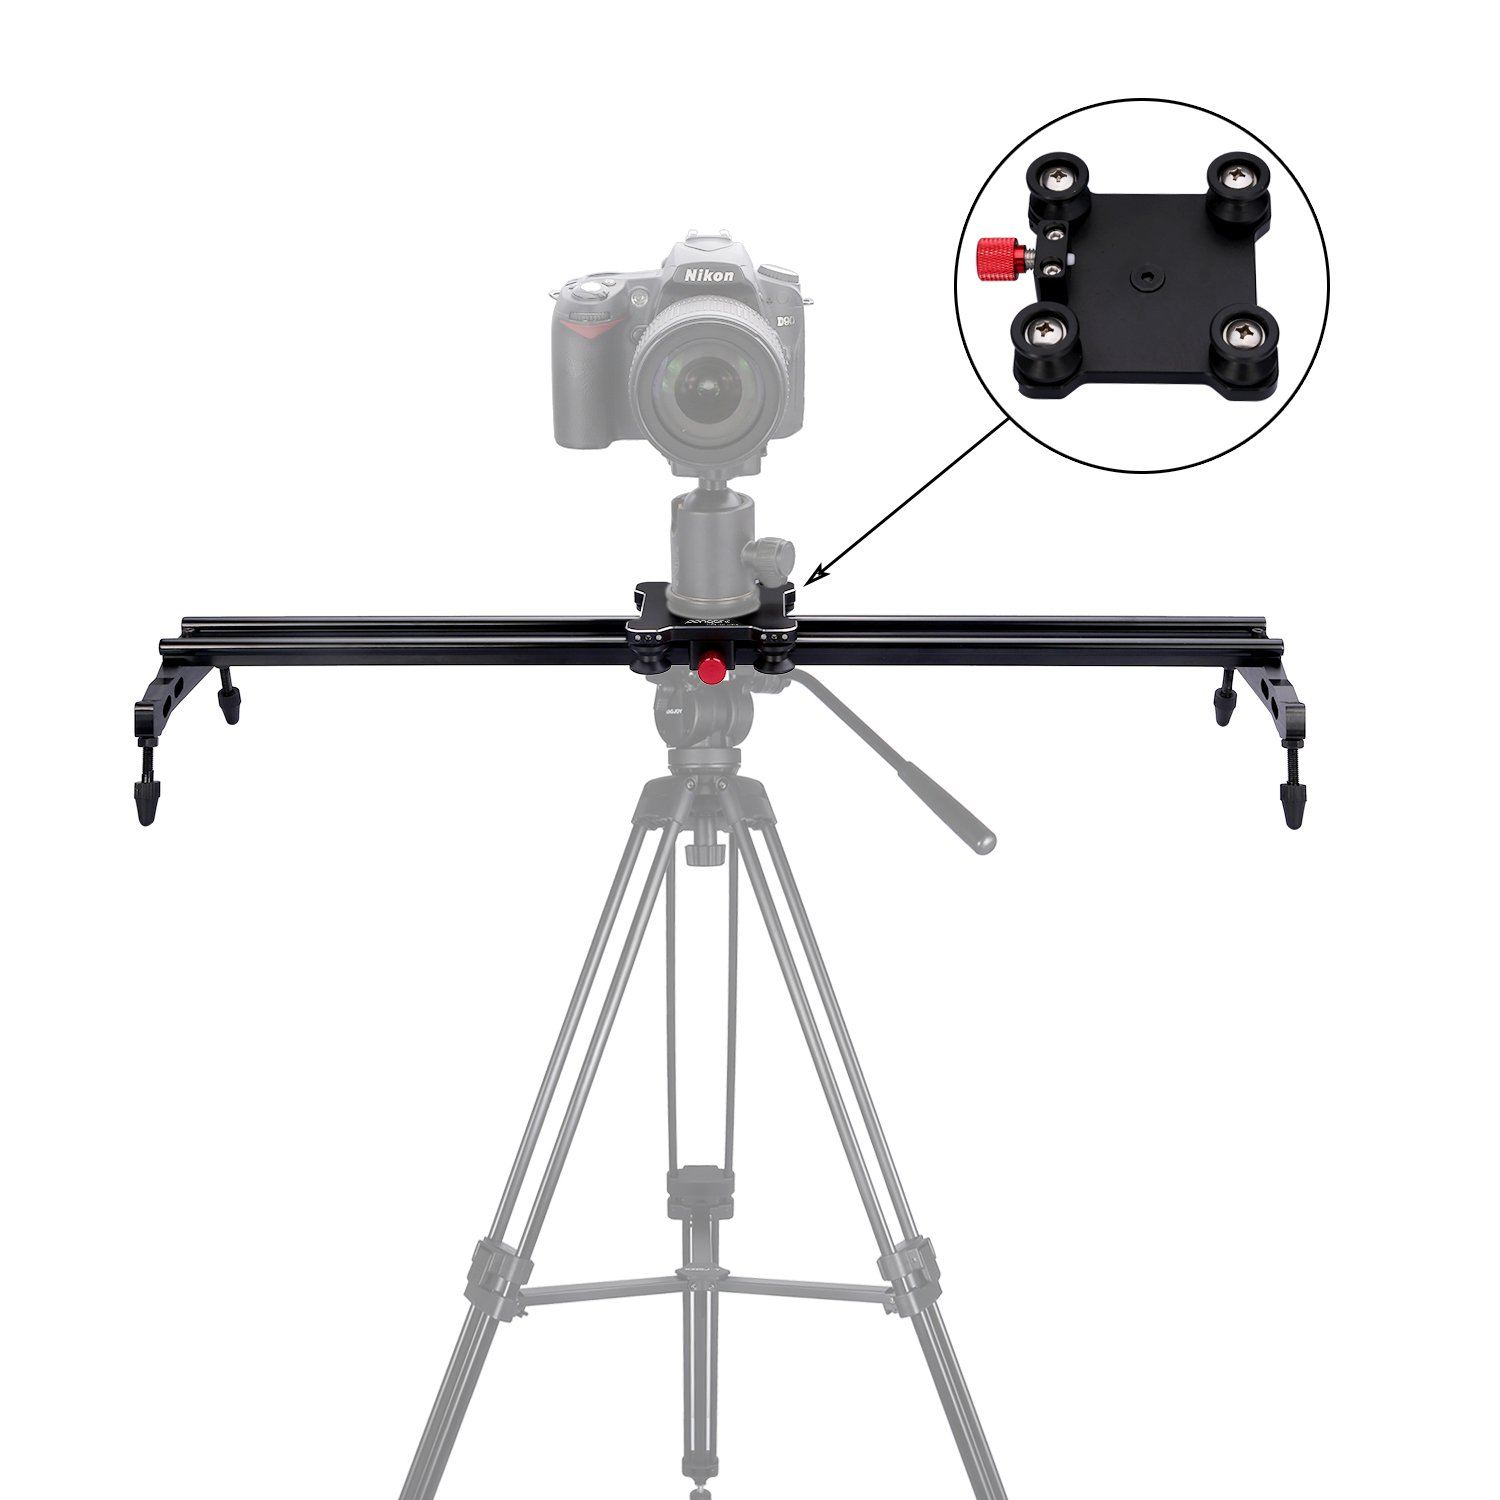 pangshi 24'' Camera Slider Dolly Track Glider System with Roller Bearing for DSLR Video Camera